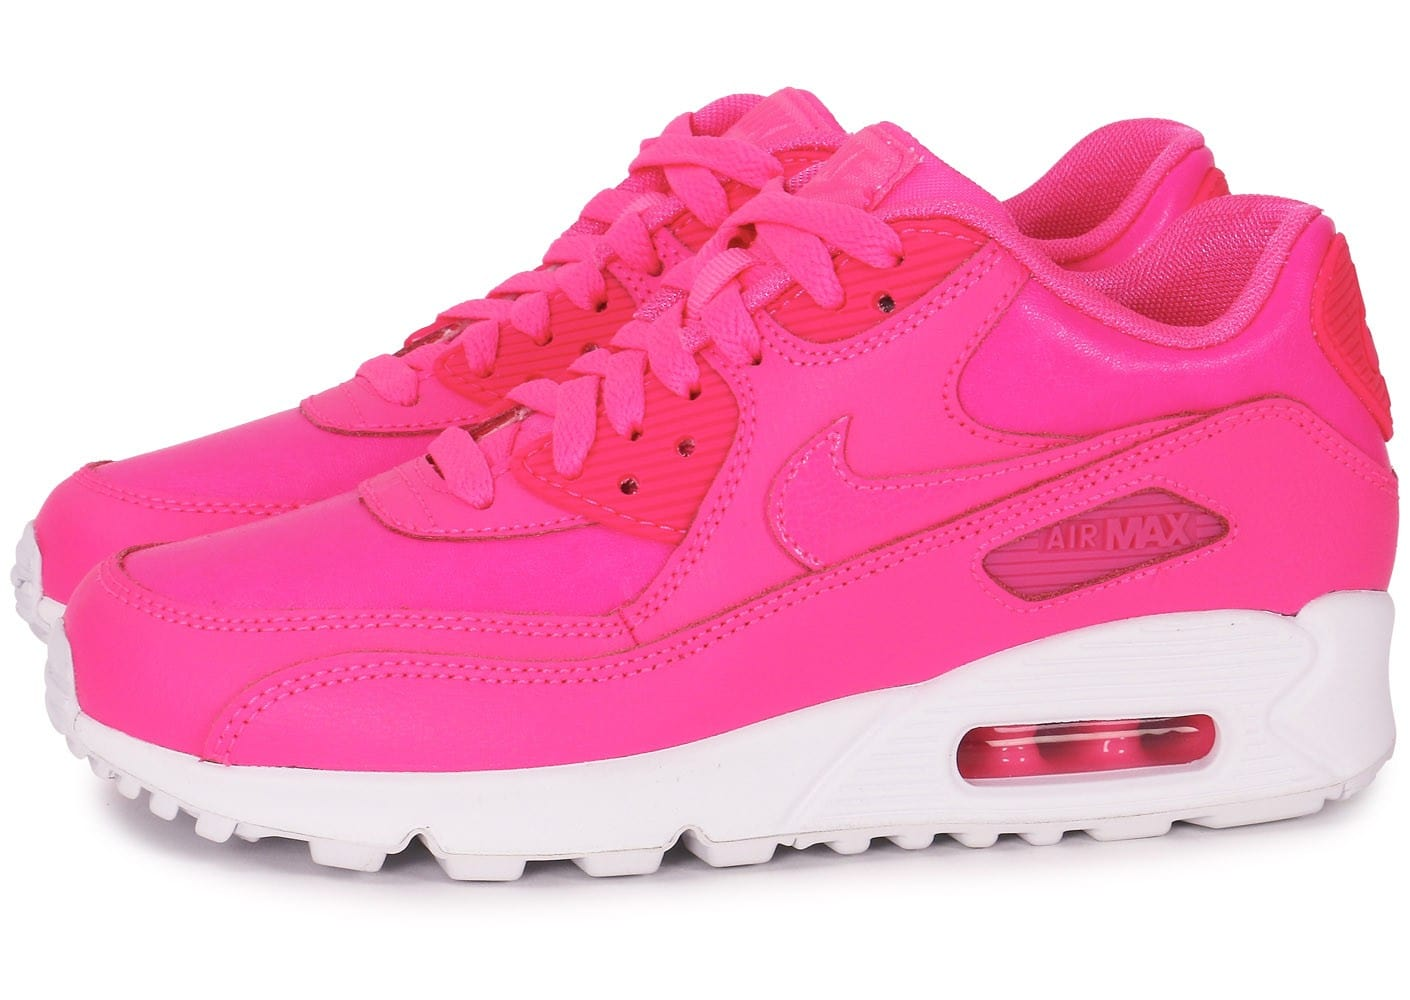 nike air max 90 rose. Black Bedroom Furniture Sets. Home Design Ideas